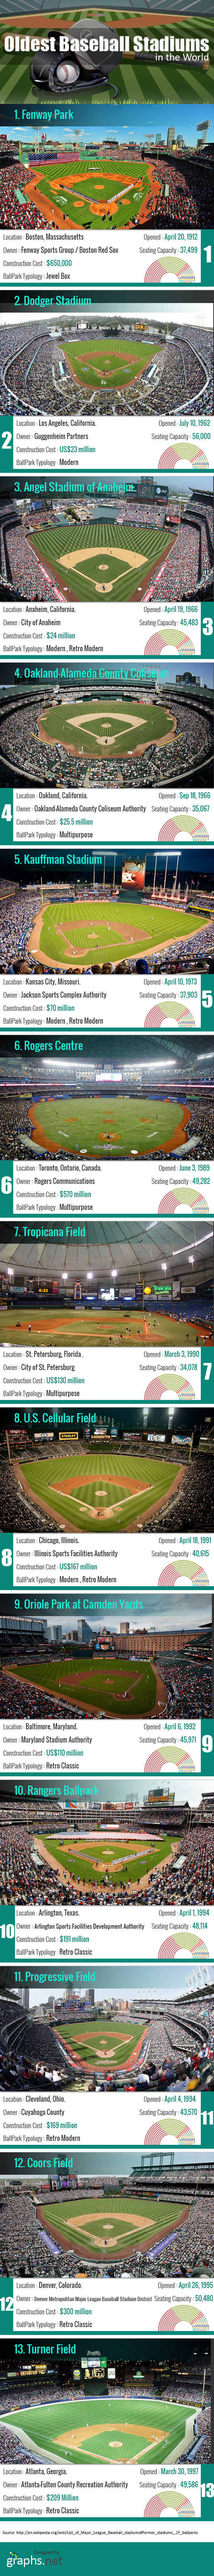 Oldest Baseball Stadiums in the World